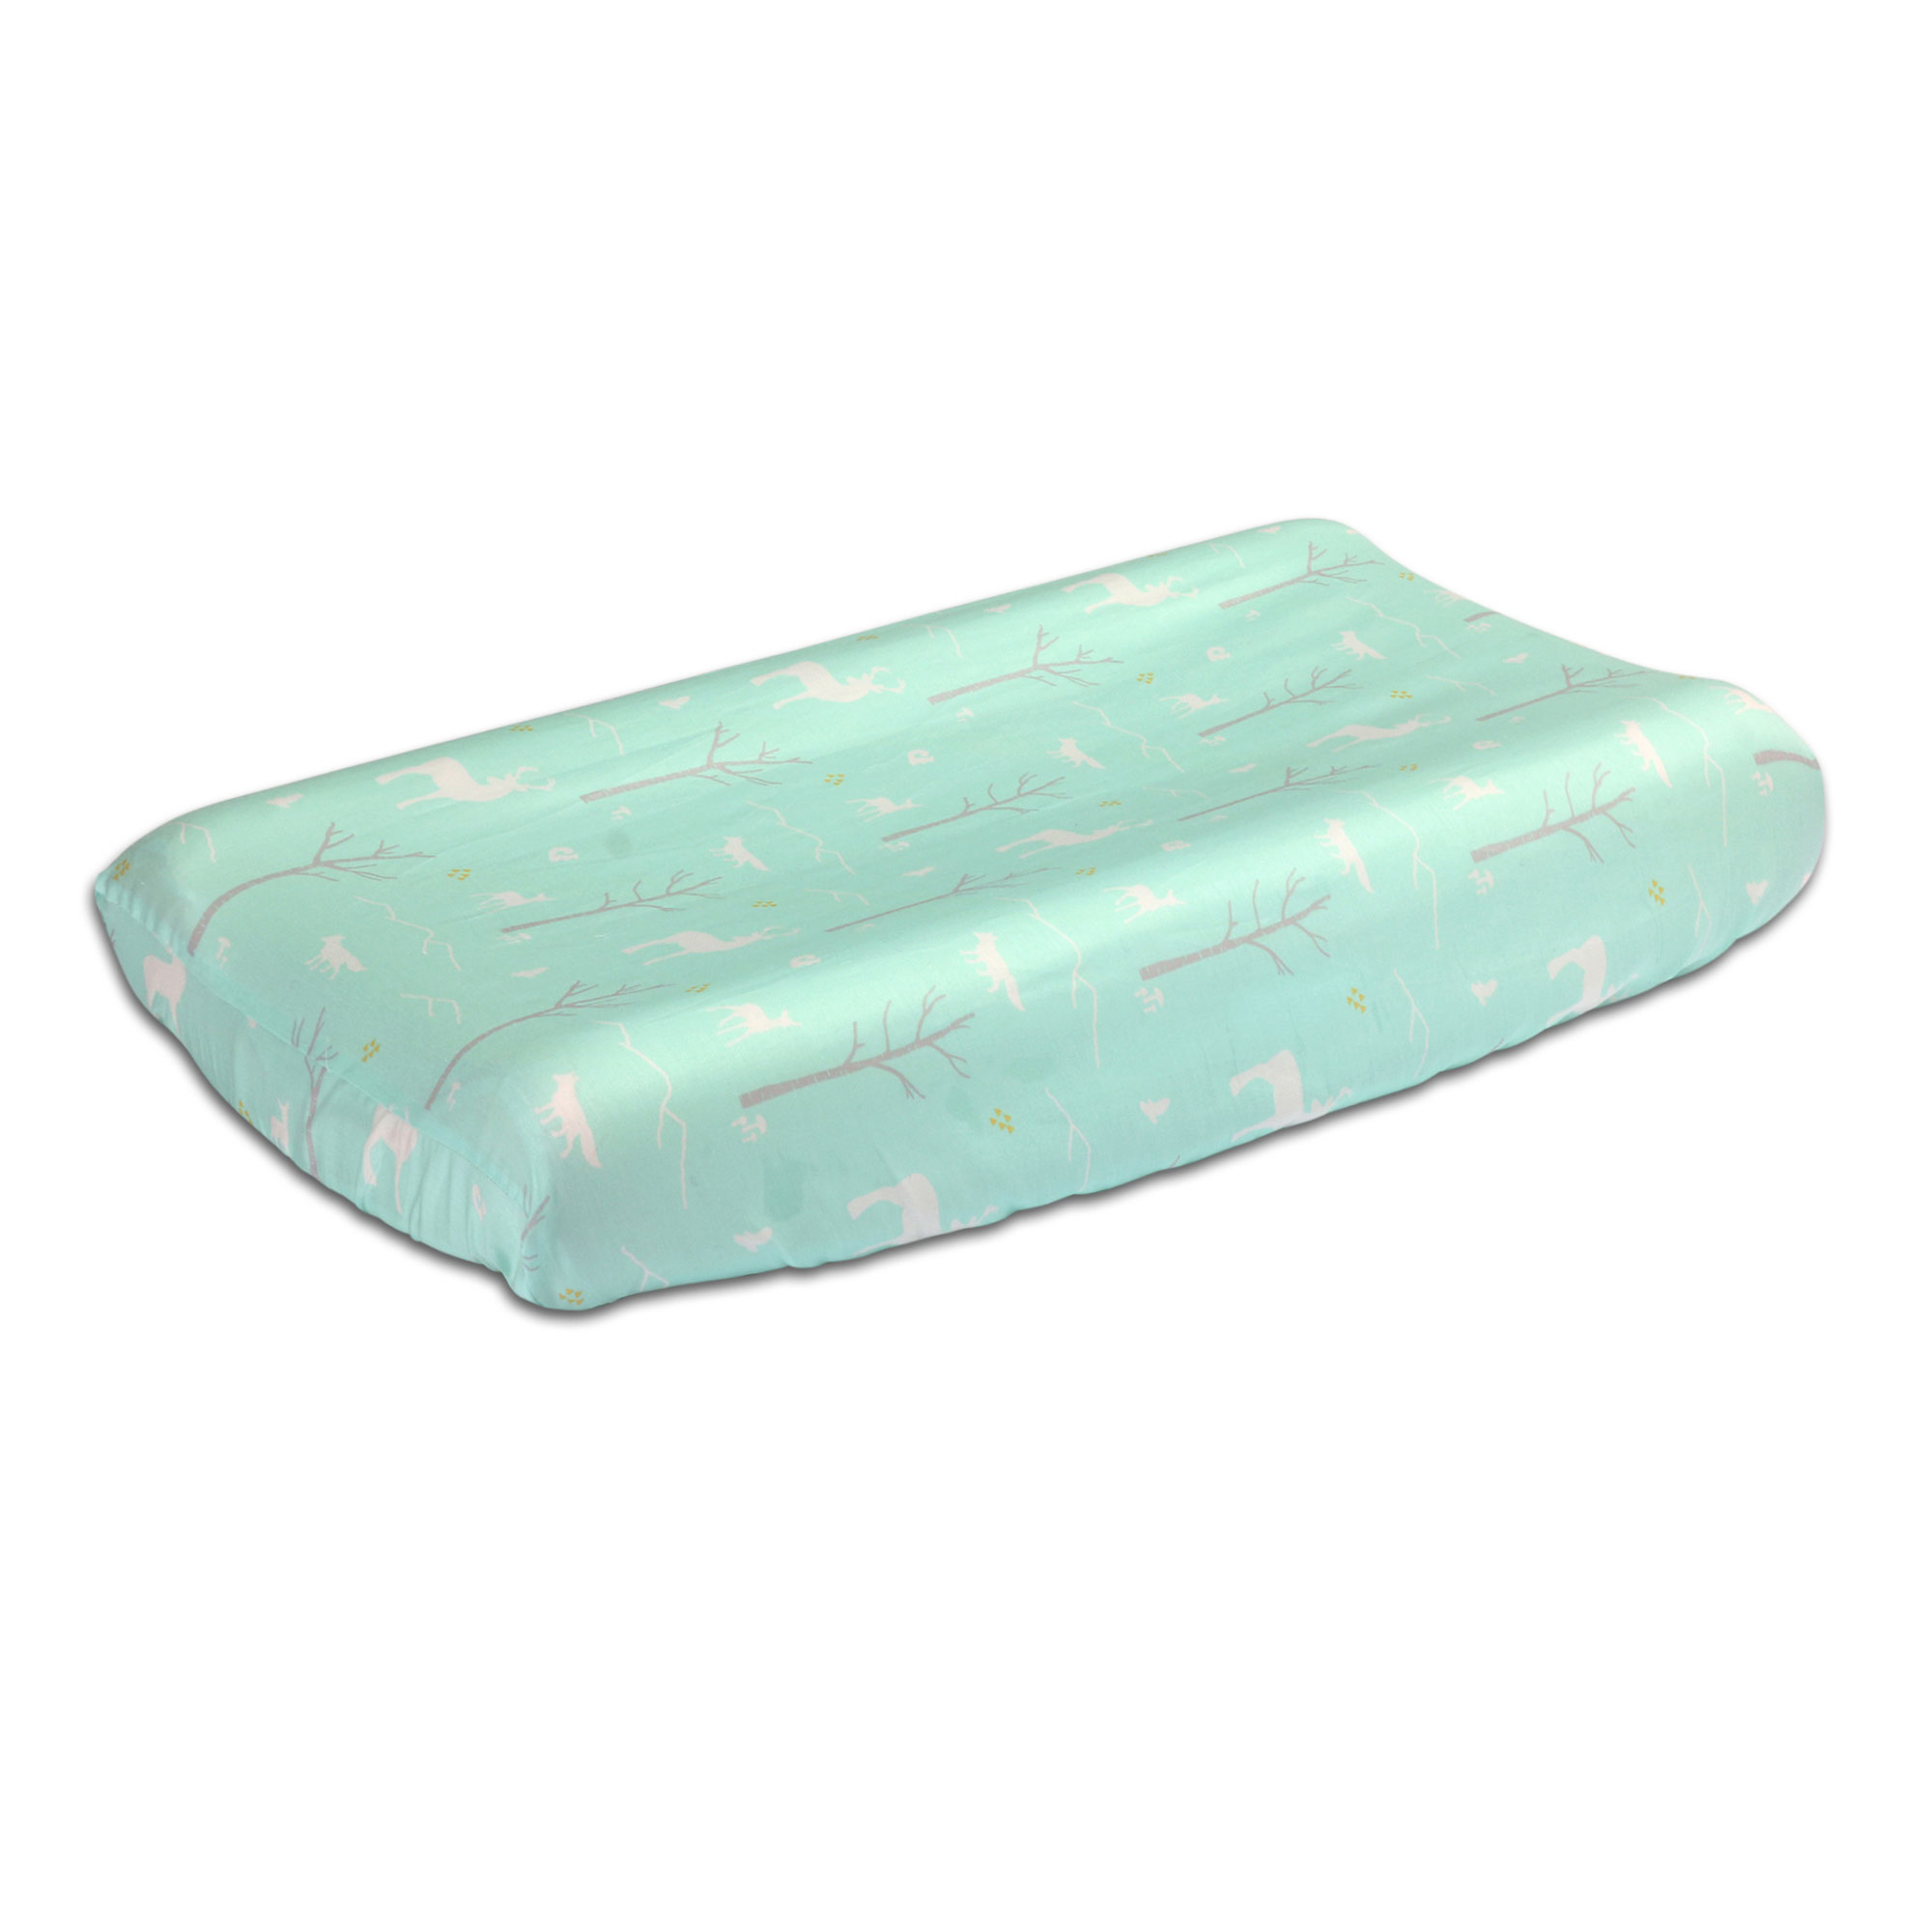 Mint Green Woodland Theme Baby Changing Pad Cover by The Pea